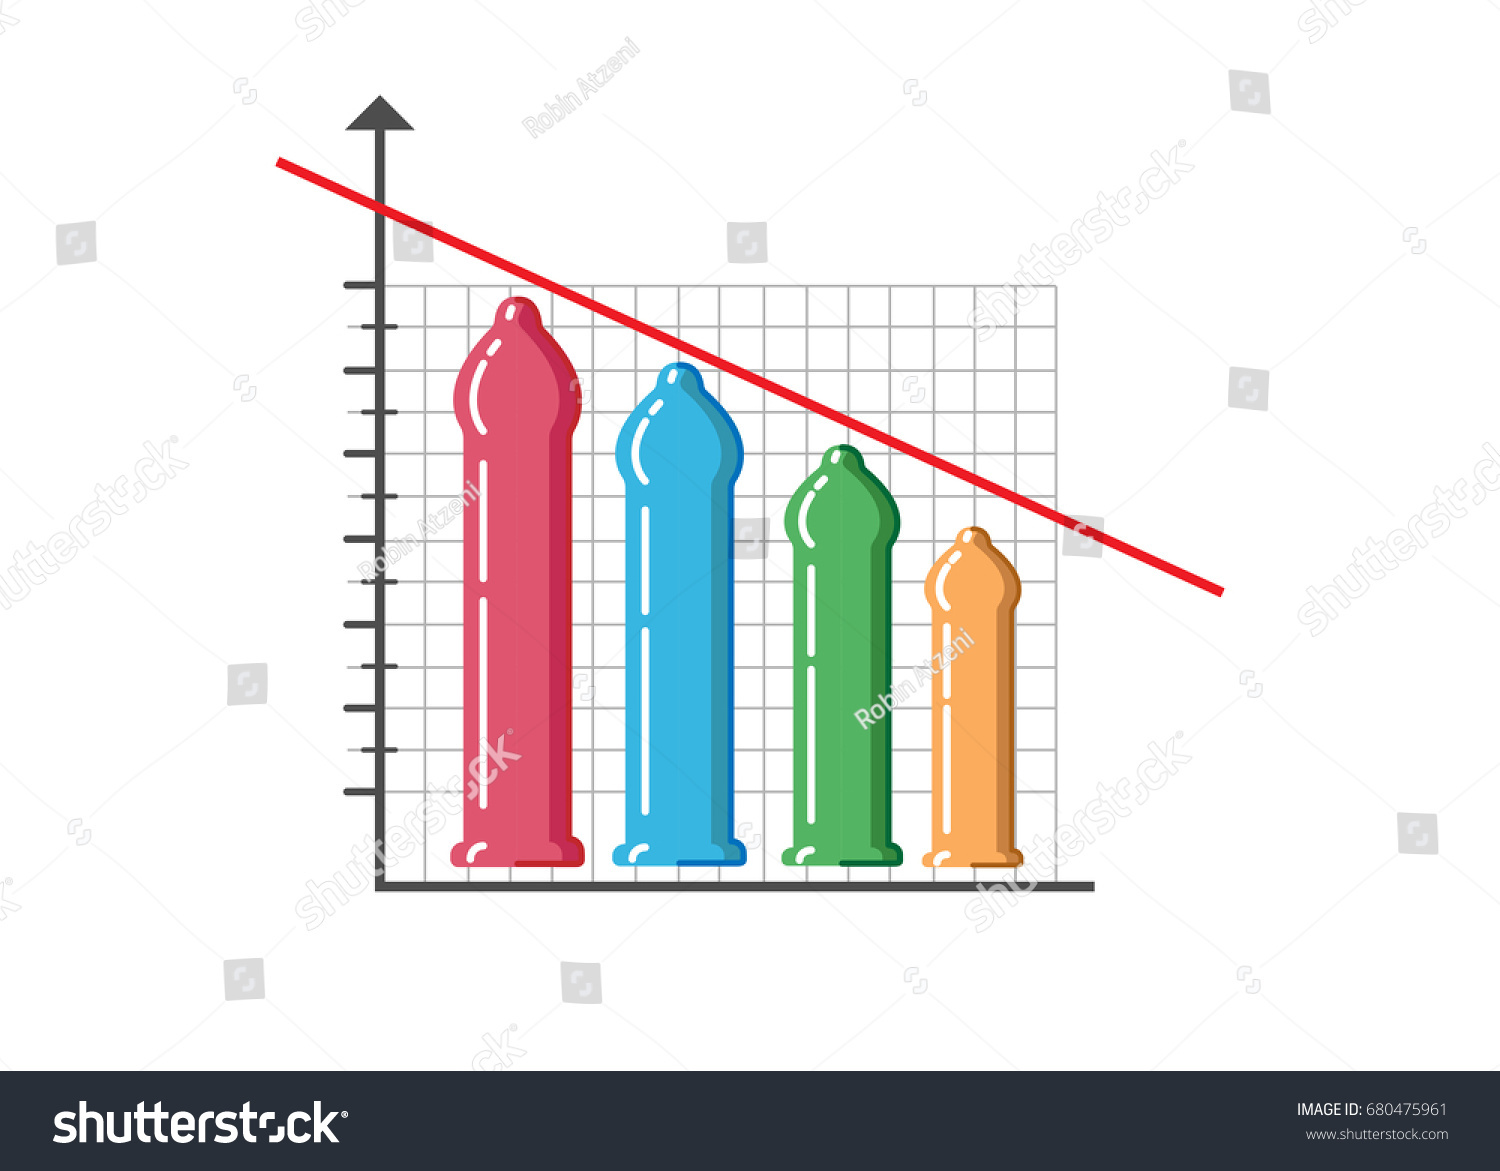 different size of penises such as small medium large and extra large,  Vector colorful chart